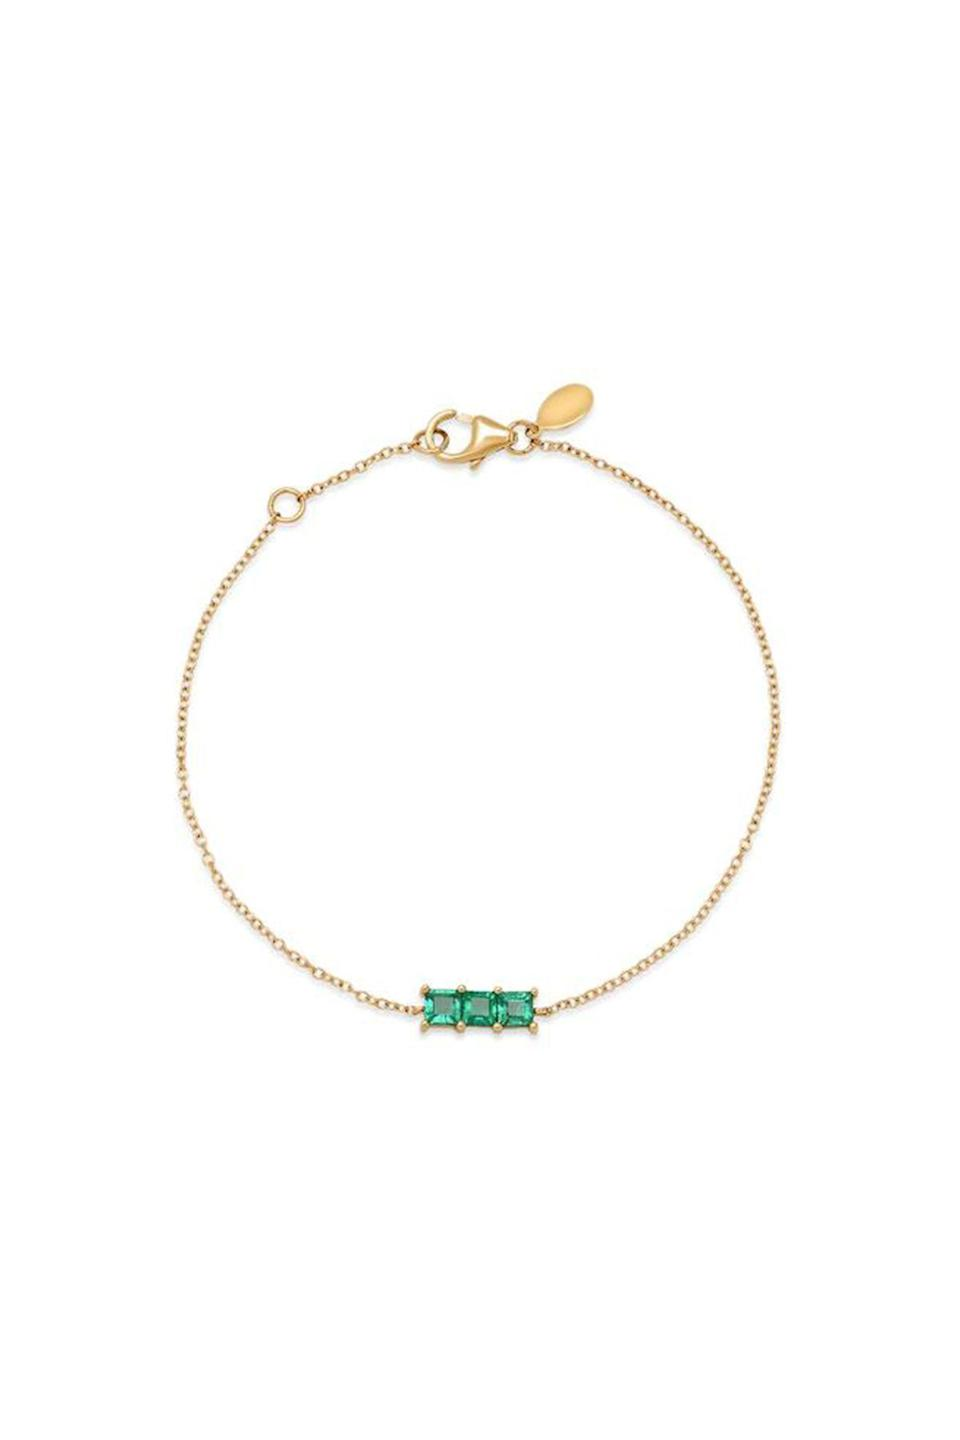 """<p><strong>Eriness</strong></p><p>eriness.com</p><p><strong>$850.00</strong></p><p><a href=""""https://eriness.com/collections/bracelets/products/triple-emerald-princess-cut-bracelet"""" rel=""""nofollow noopener"""" target=""""_blank"""" data-ylk=""""slk:Shop Now"""" class=""""link rapid-noclick-resp"""">Shop Now</a></p><p>There's nothing better than an eye-catching gem, especially when it's on a sleek vintage chain. </p>"""